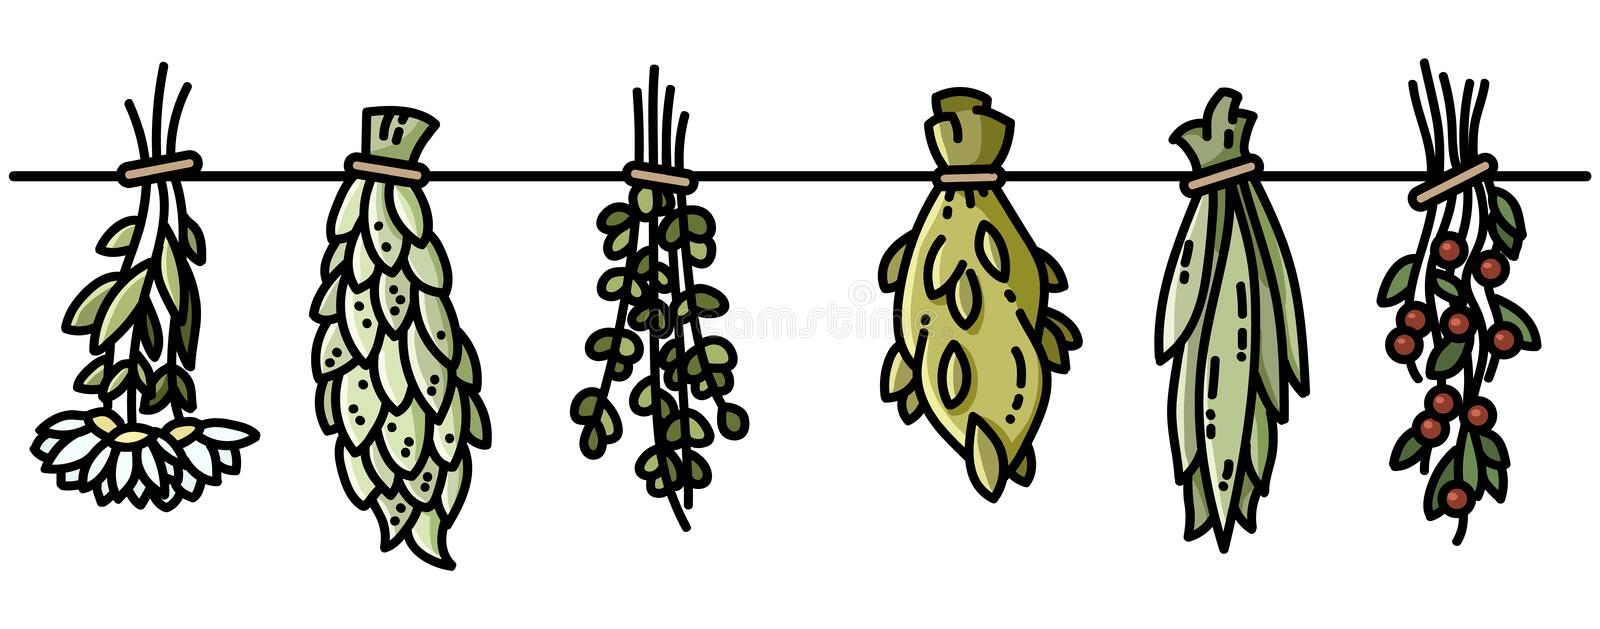 Witch herbs boho hanging flat style decoration stock illustration